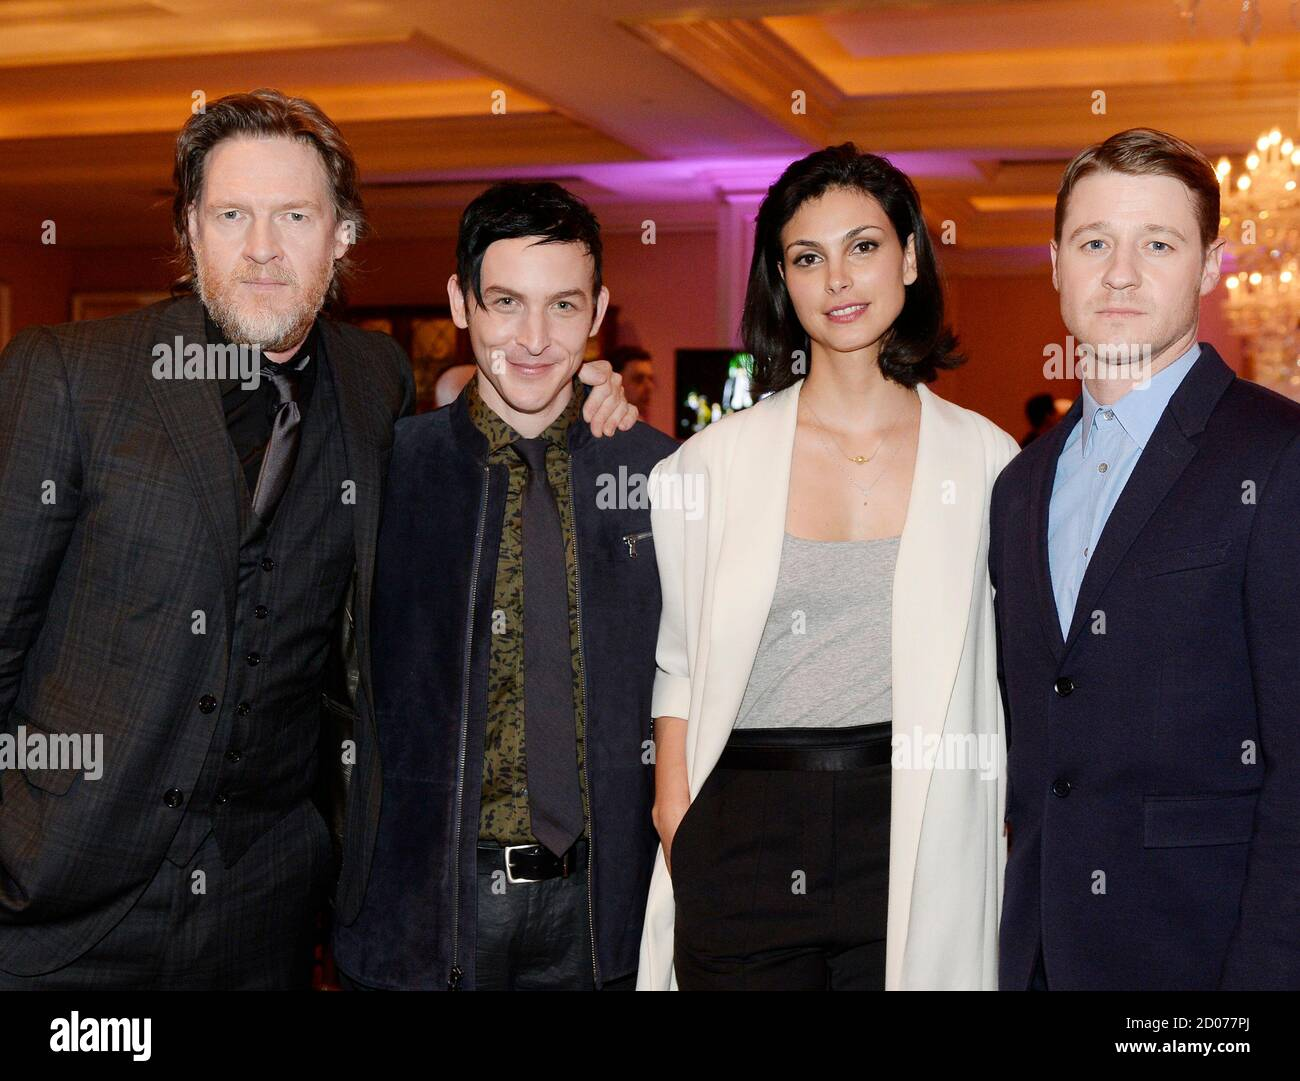 Page 3 Ben Mckenzie High Resolution Stock Photography And Images Alamy